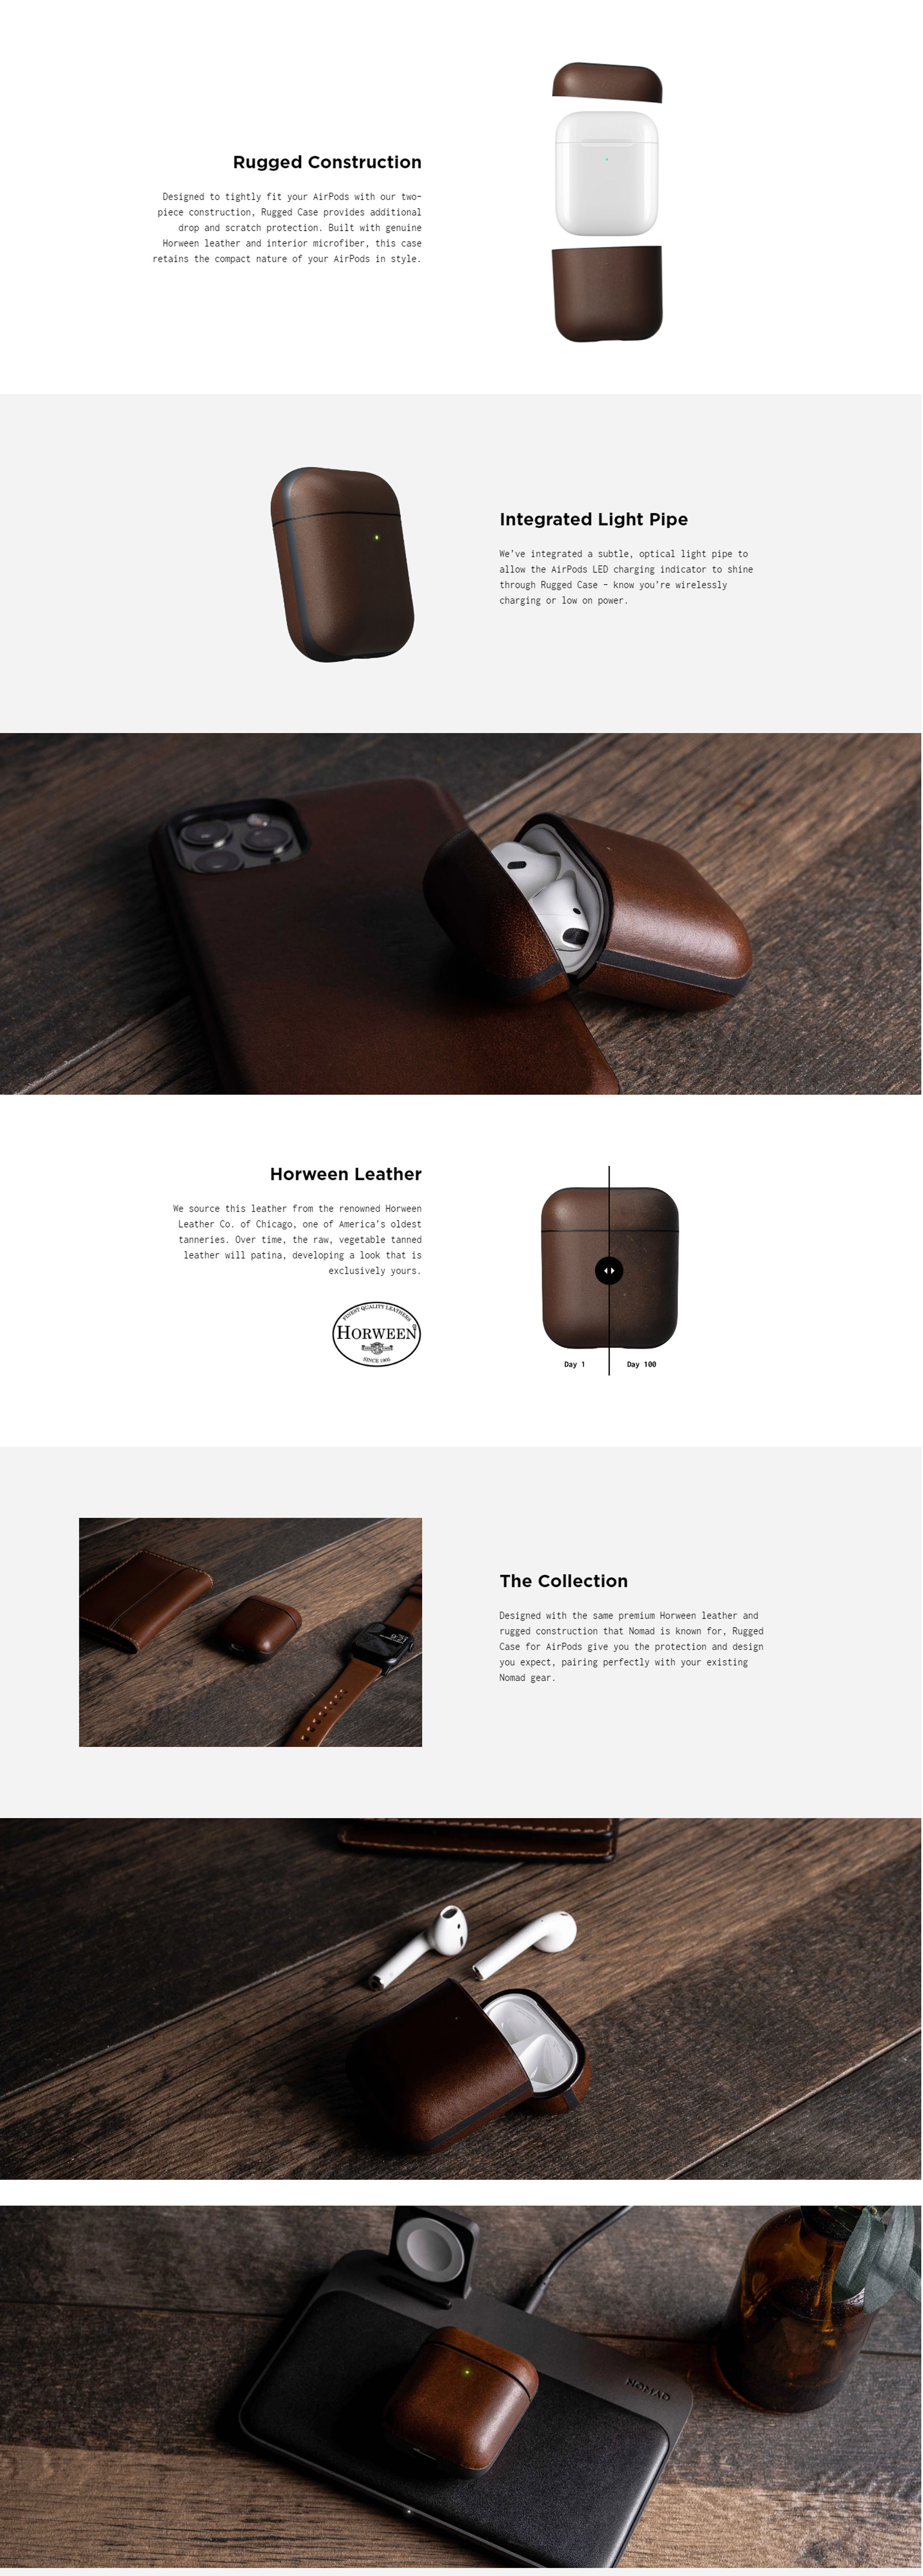 nomad/856504015732/1-des-fx-nomad-rugged-case-airpods-wireless-charging-case-airpods-1-and-2-compatible-rustic-brown-color-856504015732-malaysia-authorised-retailer